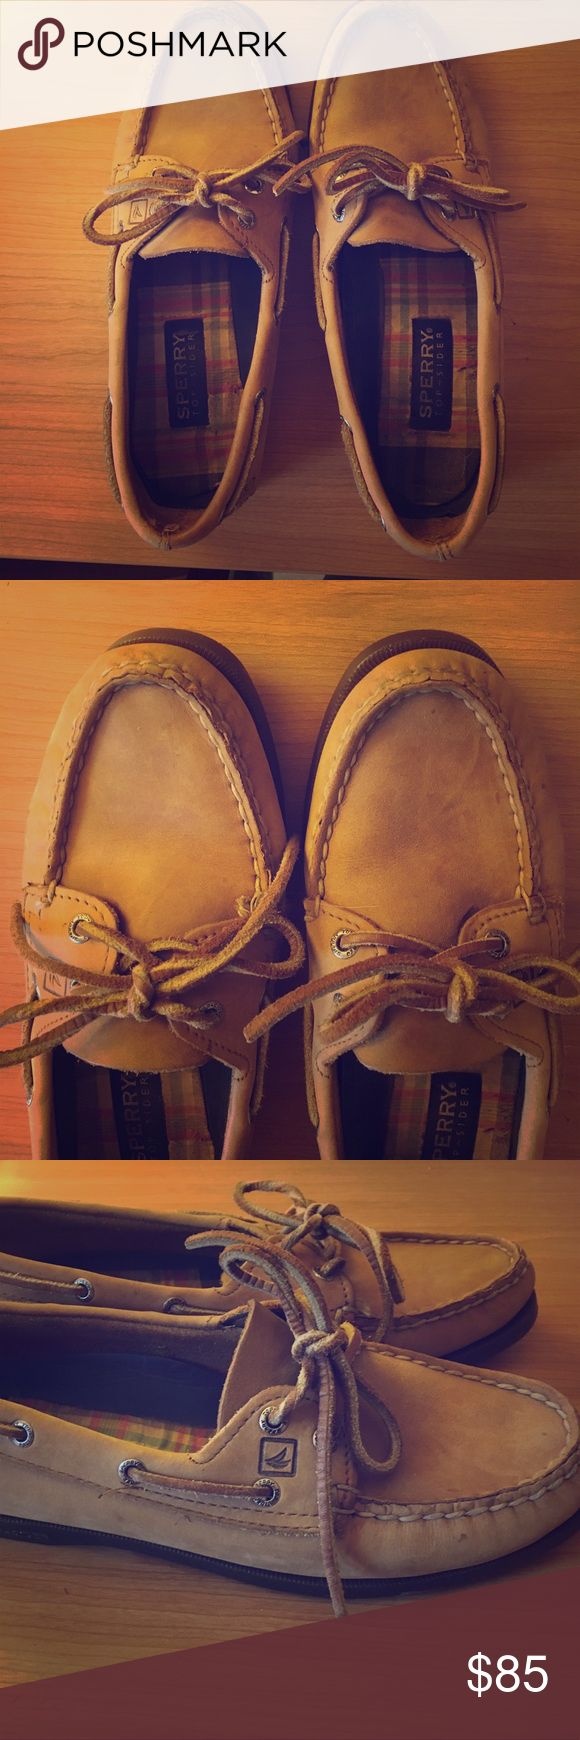 Size 7.5 Genuine Leather Sperry Boat Shoes Size 7.5 Genuine Leather Sperry Boat Shoes. Worn a hand full of times in great condition Sperry Shoes Flats & Loafers